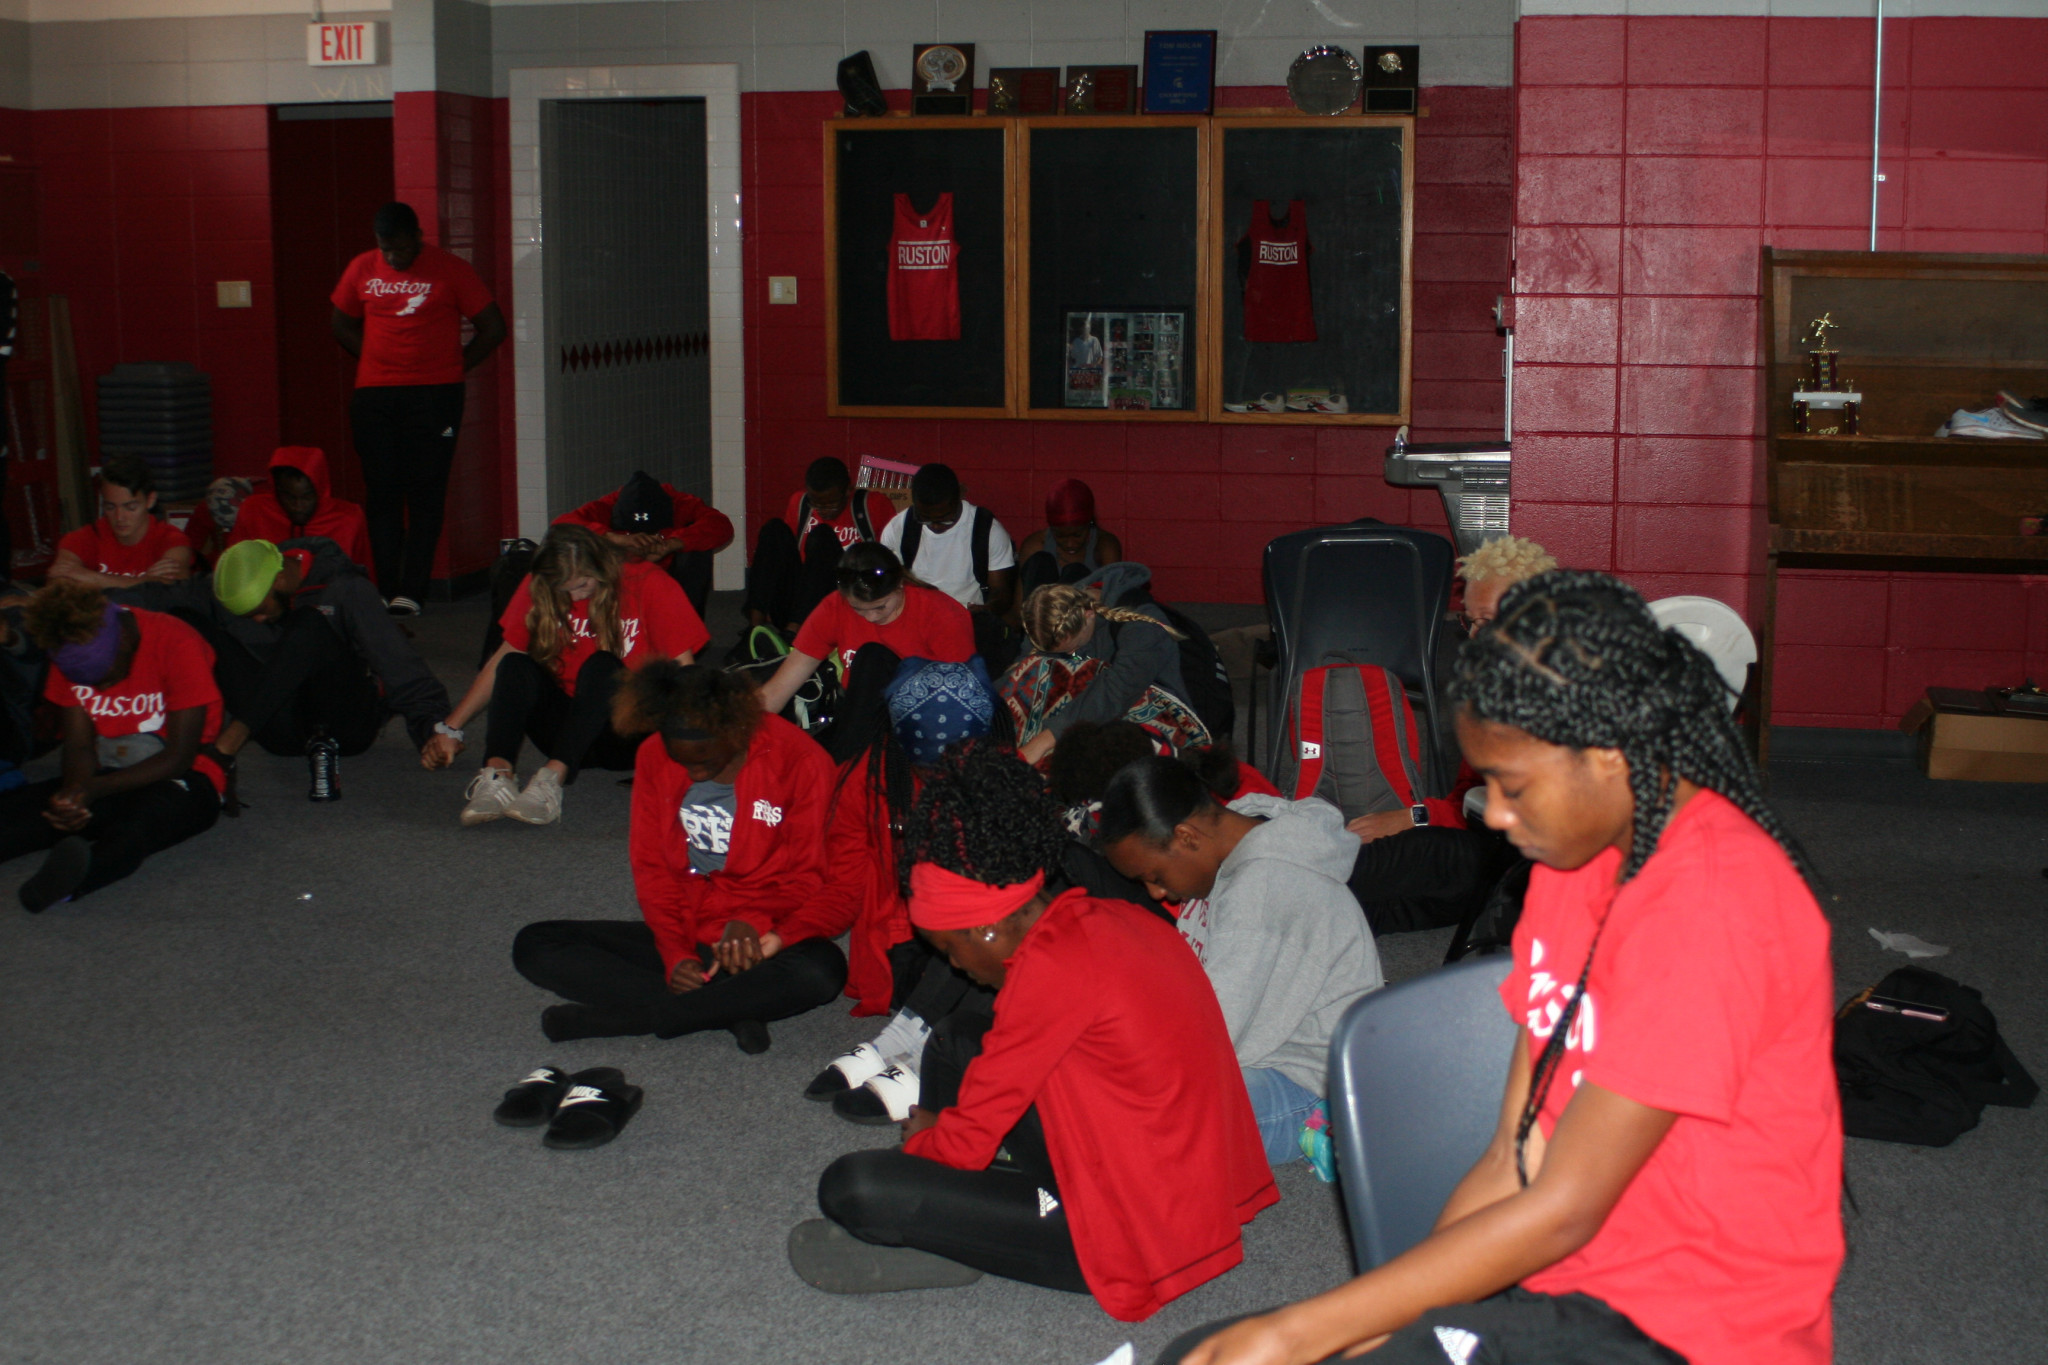 The Ruston High School track and field team praying for teammate Cam Murphy, who lost his mother and brother in the tornado, before leaving for the regional track meet — April 26